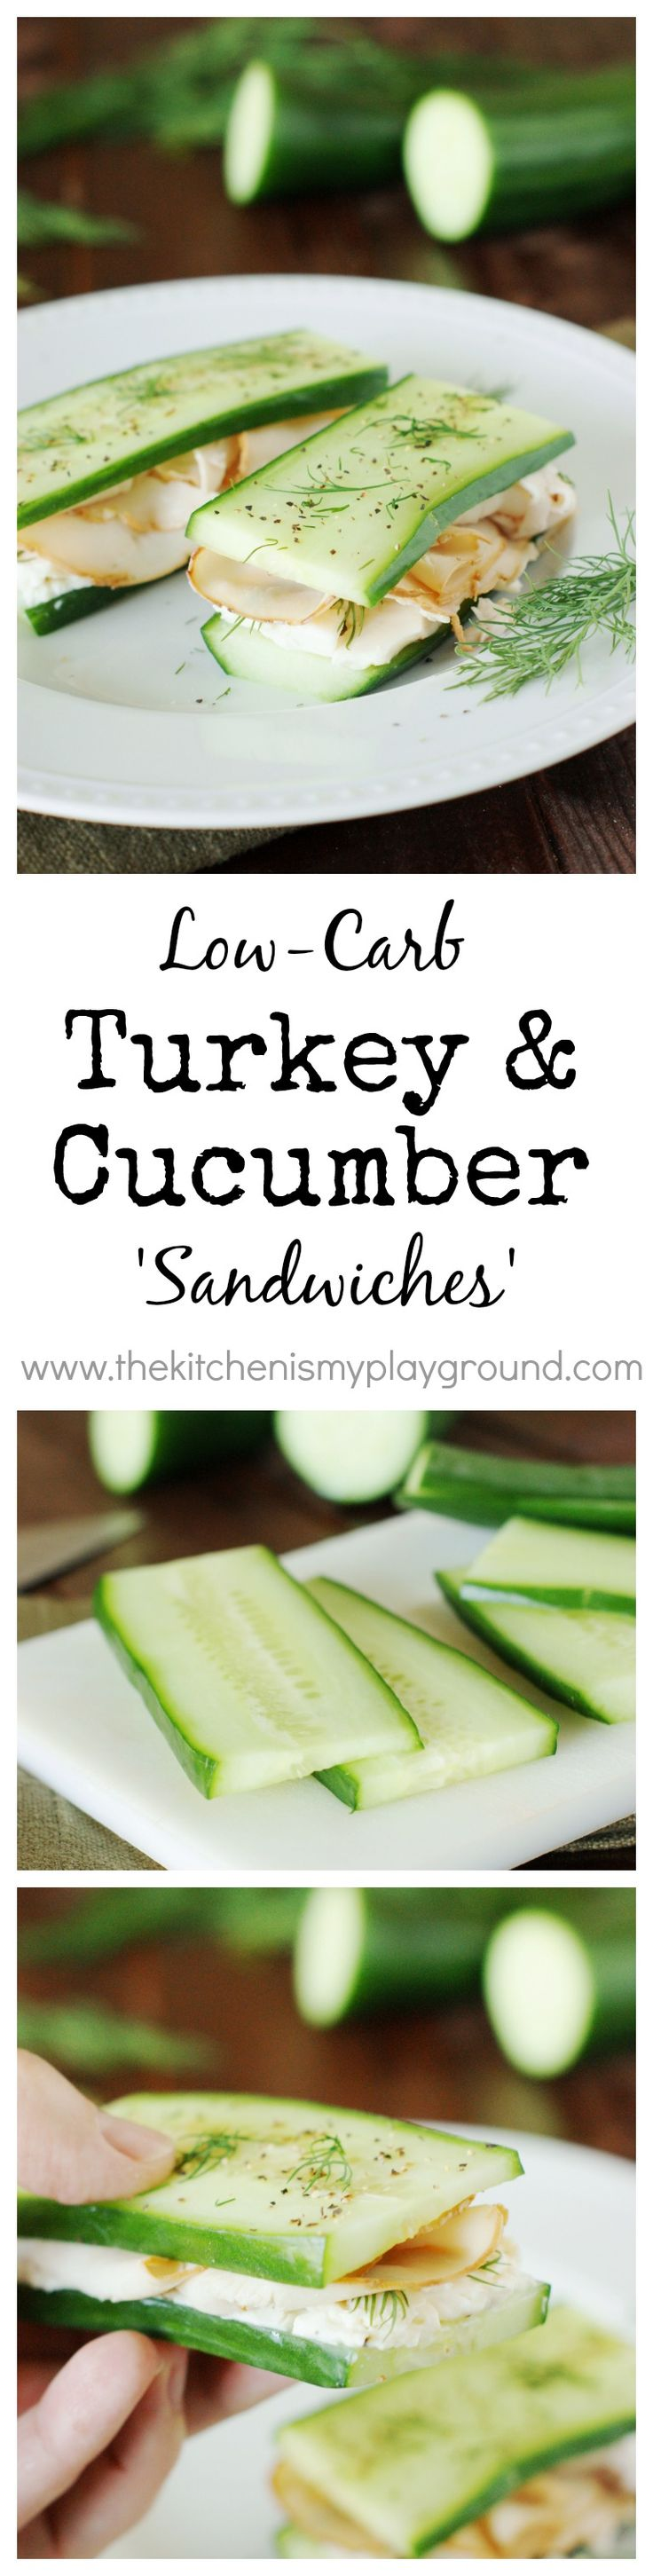 Low-Carb Smoked Turkey 'Sandwiches' ~ a GREAT low-carb lunch or snack option!    www.thekitchenismyplayground.com